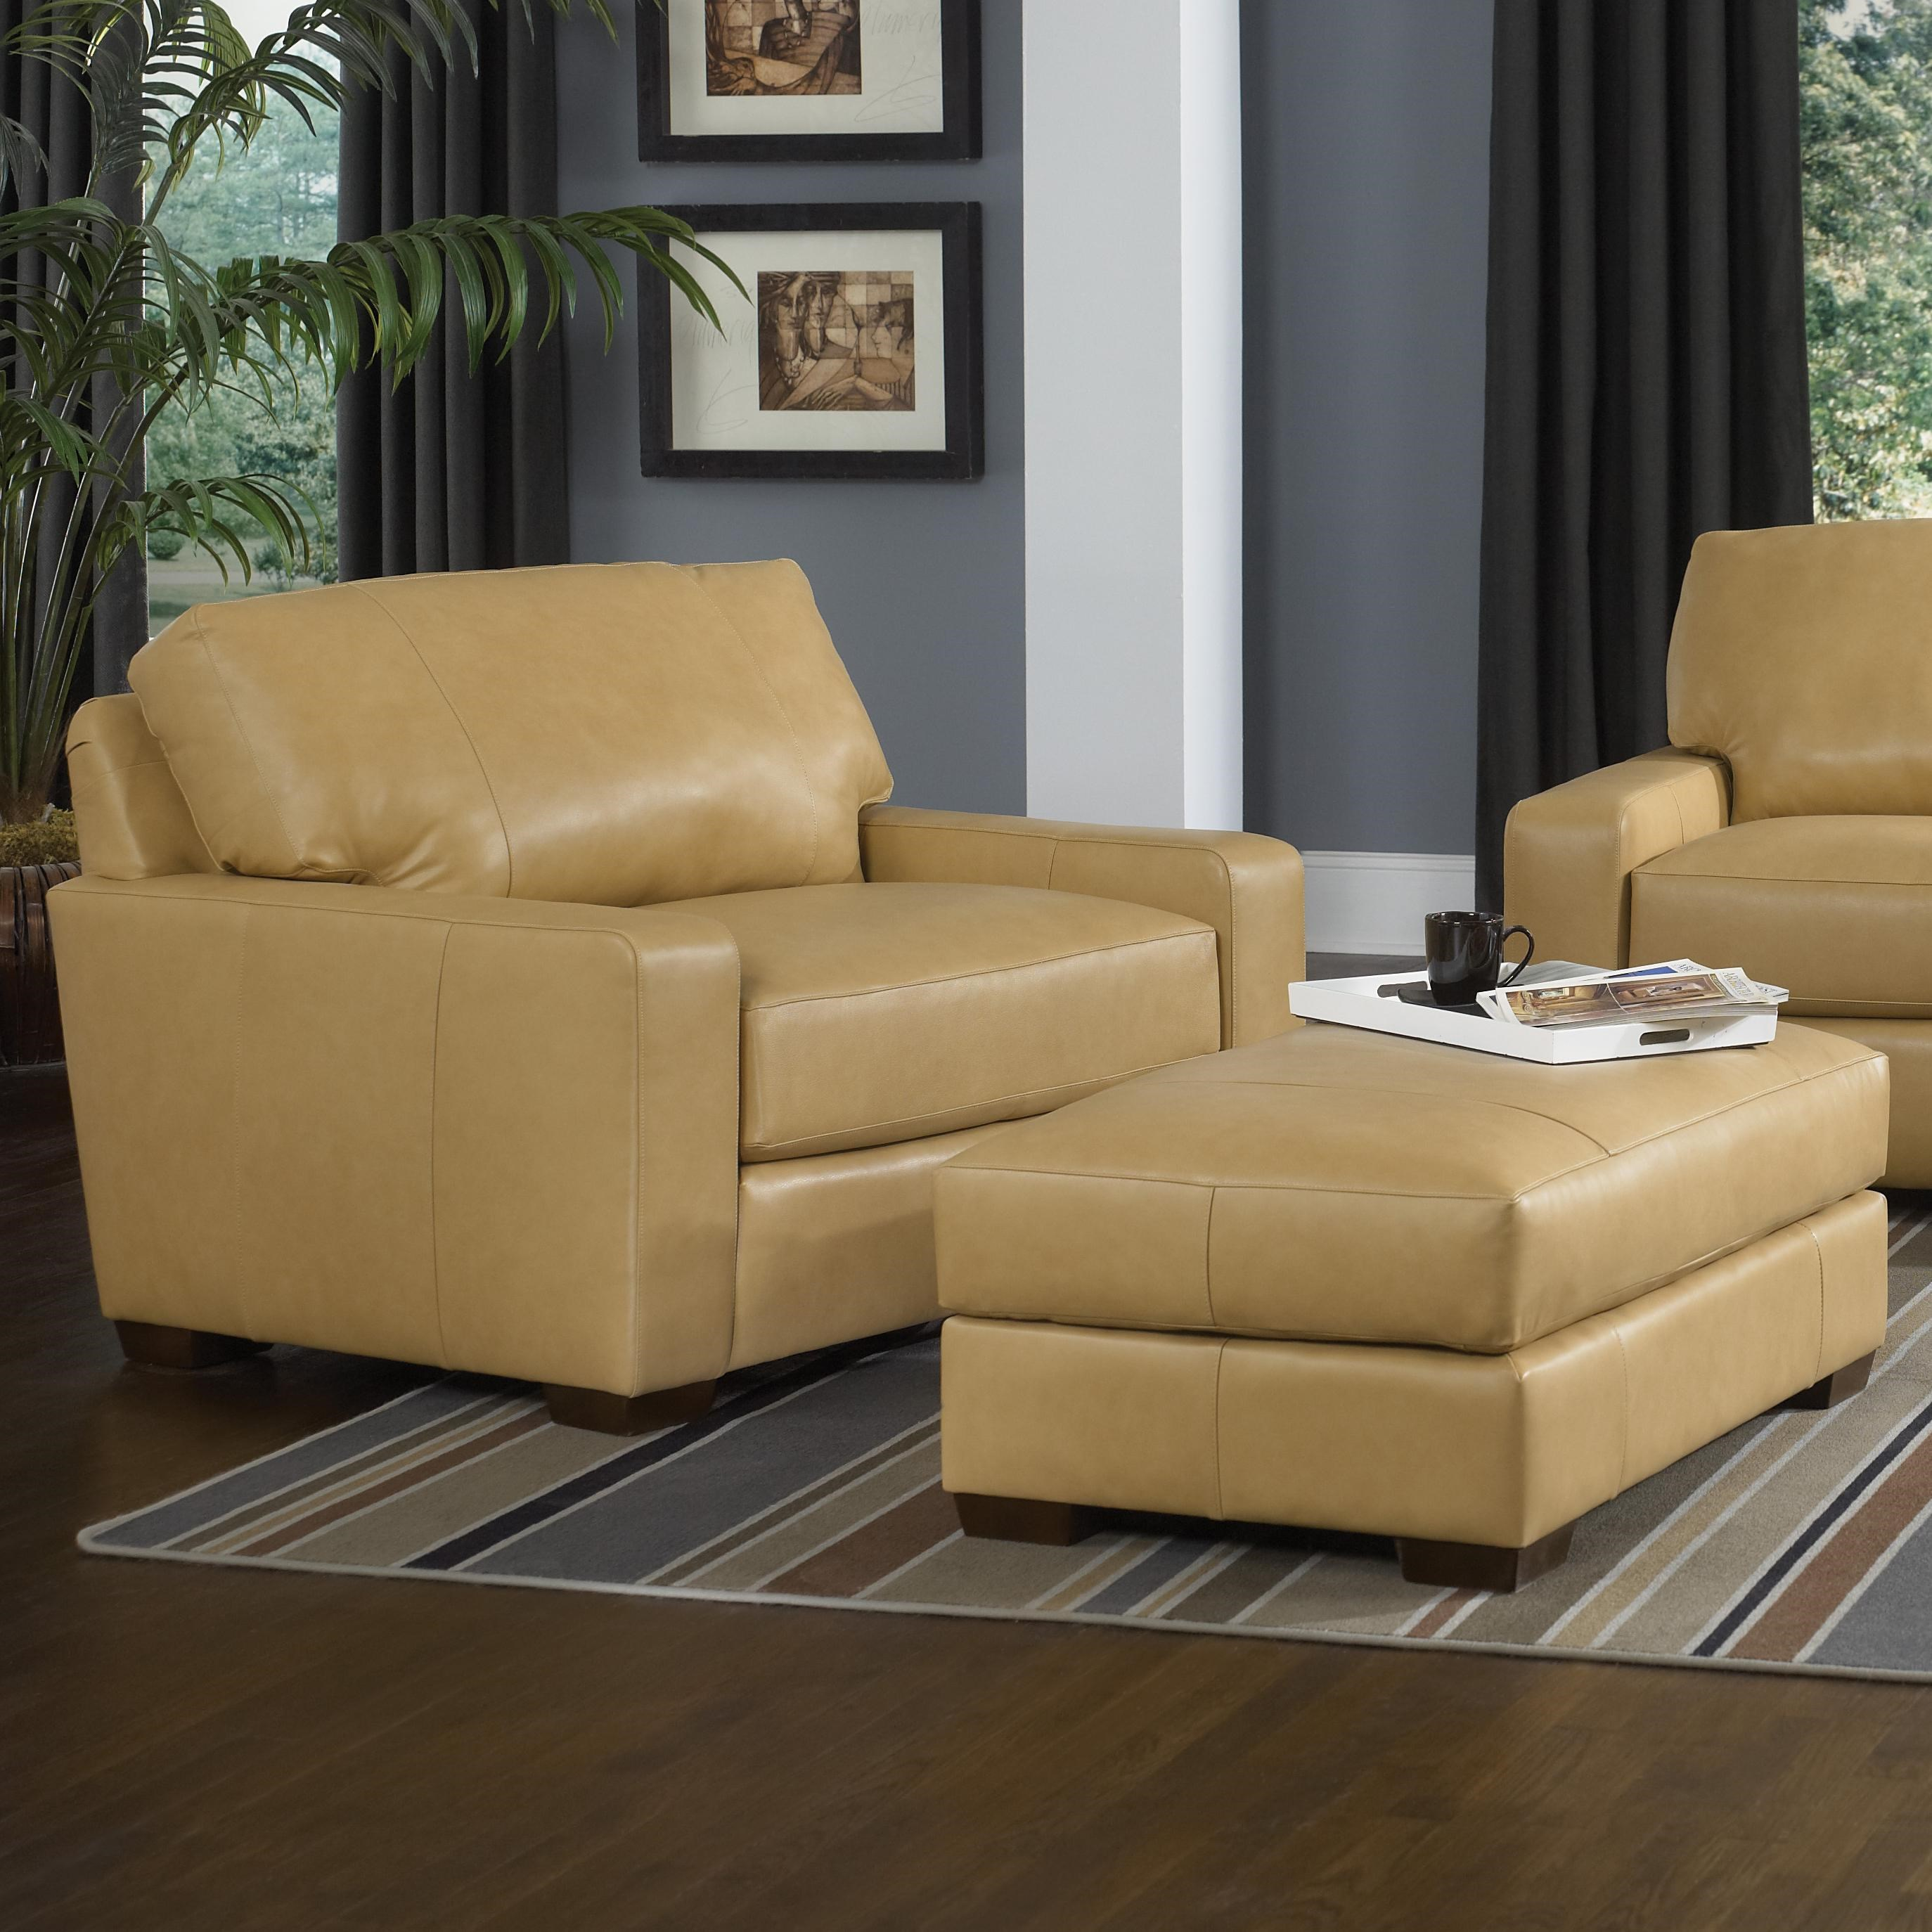 Smith Brothers Build Your Own (8000 Series) Contemporary Chair And A Half  And Ottoman